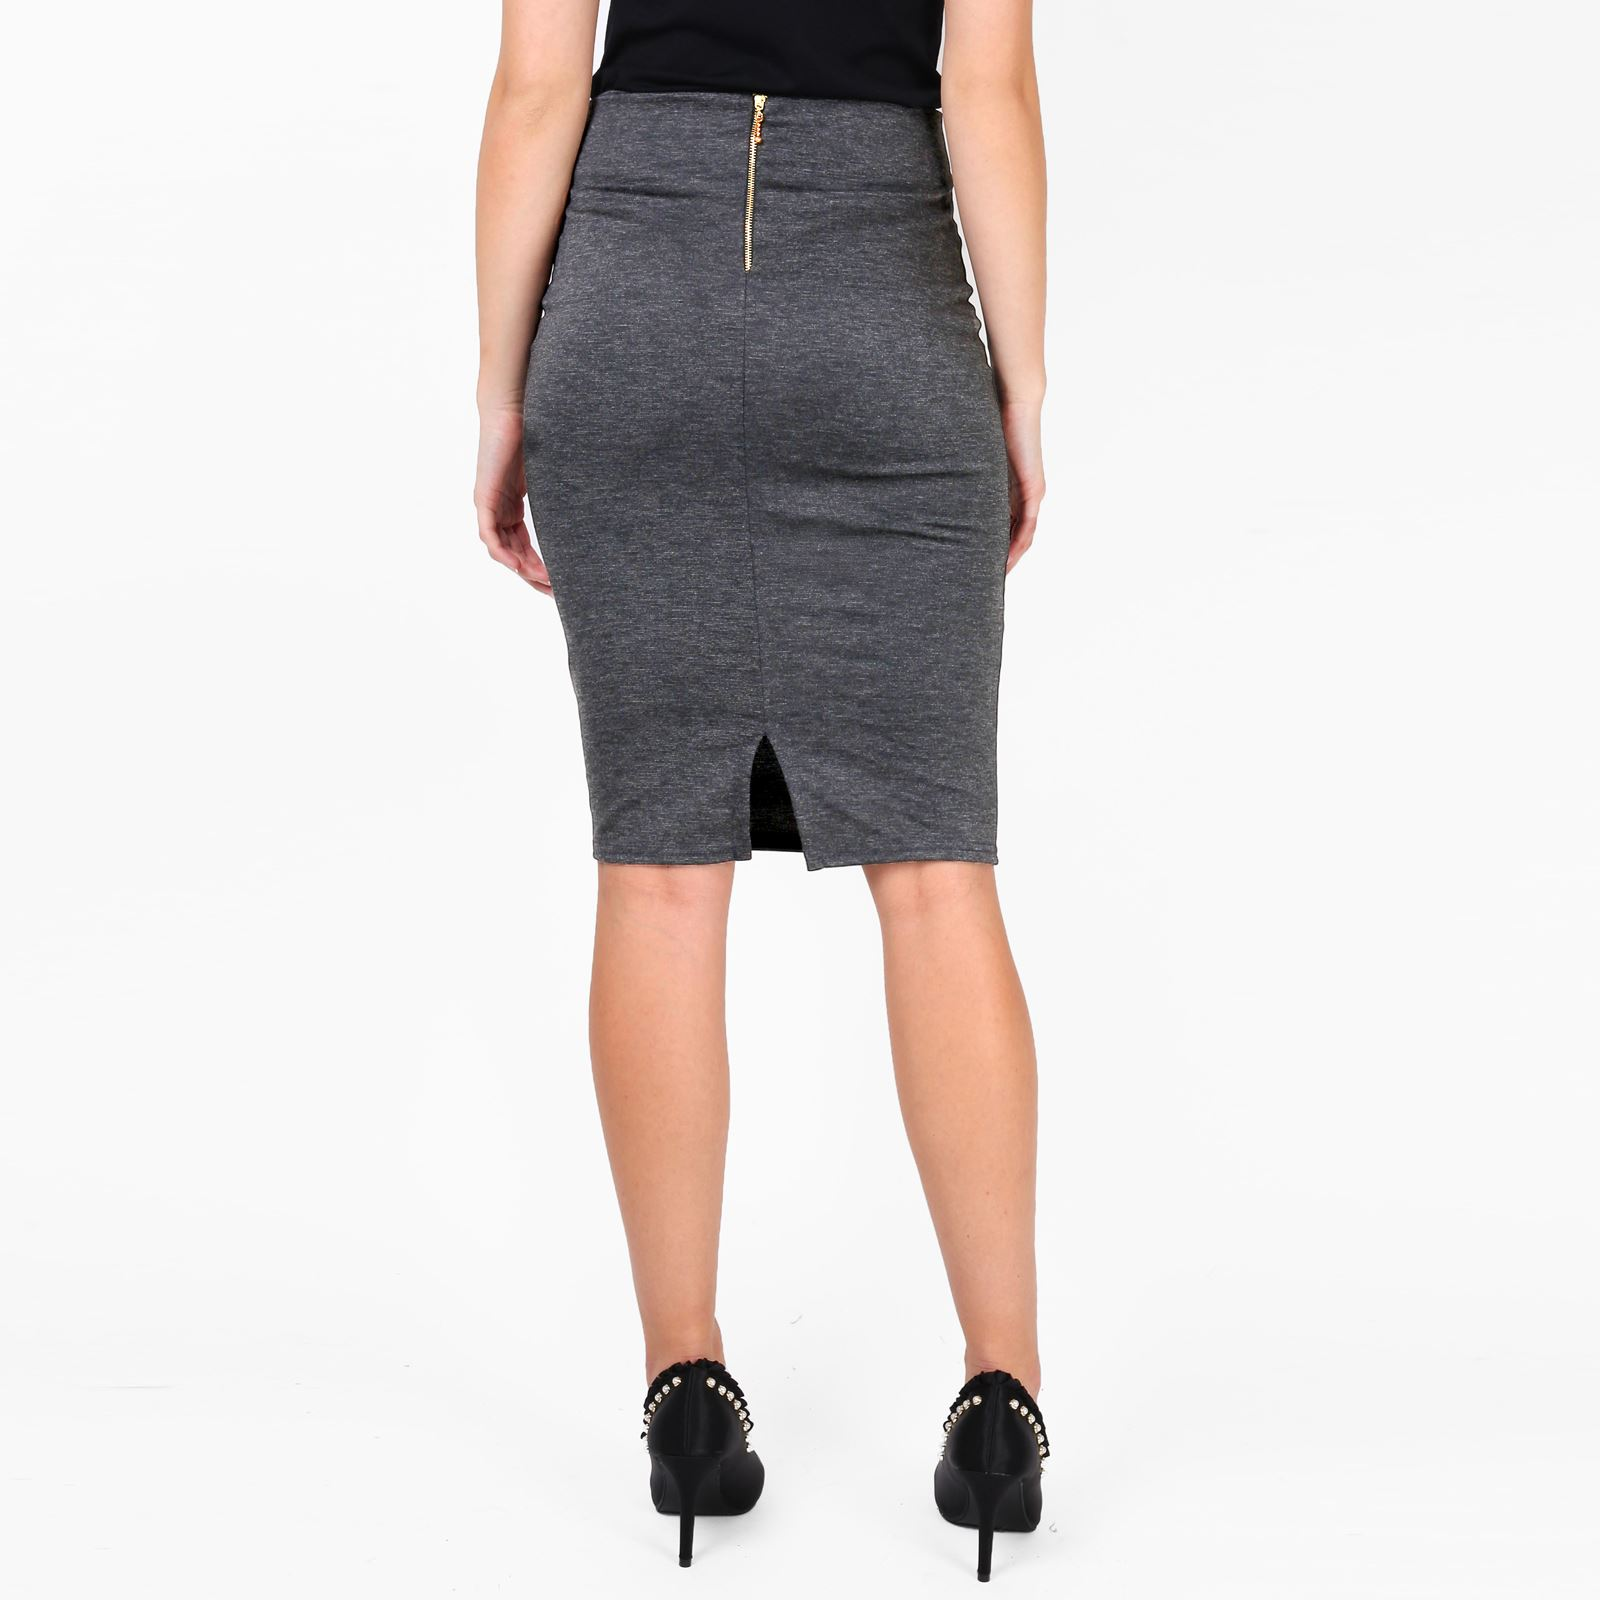 Womens-Ladies-Pencil-Midi-Skirt-Stretch-Fitted-Belt-Bodycon-Office-Work-8-20 thumbnail 7